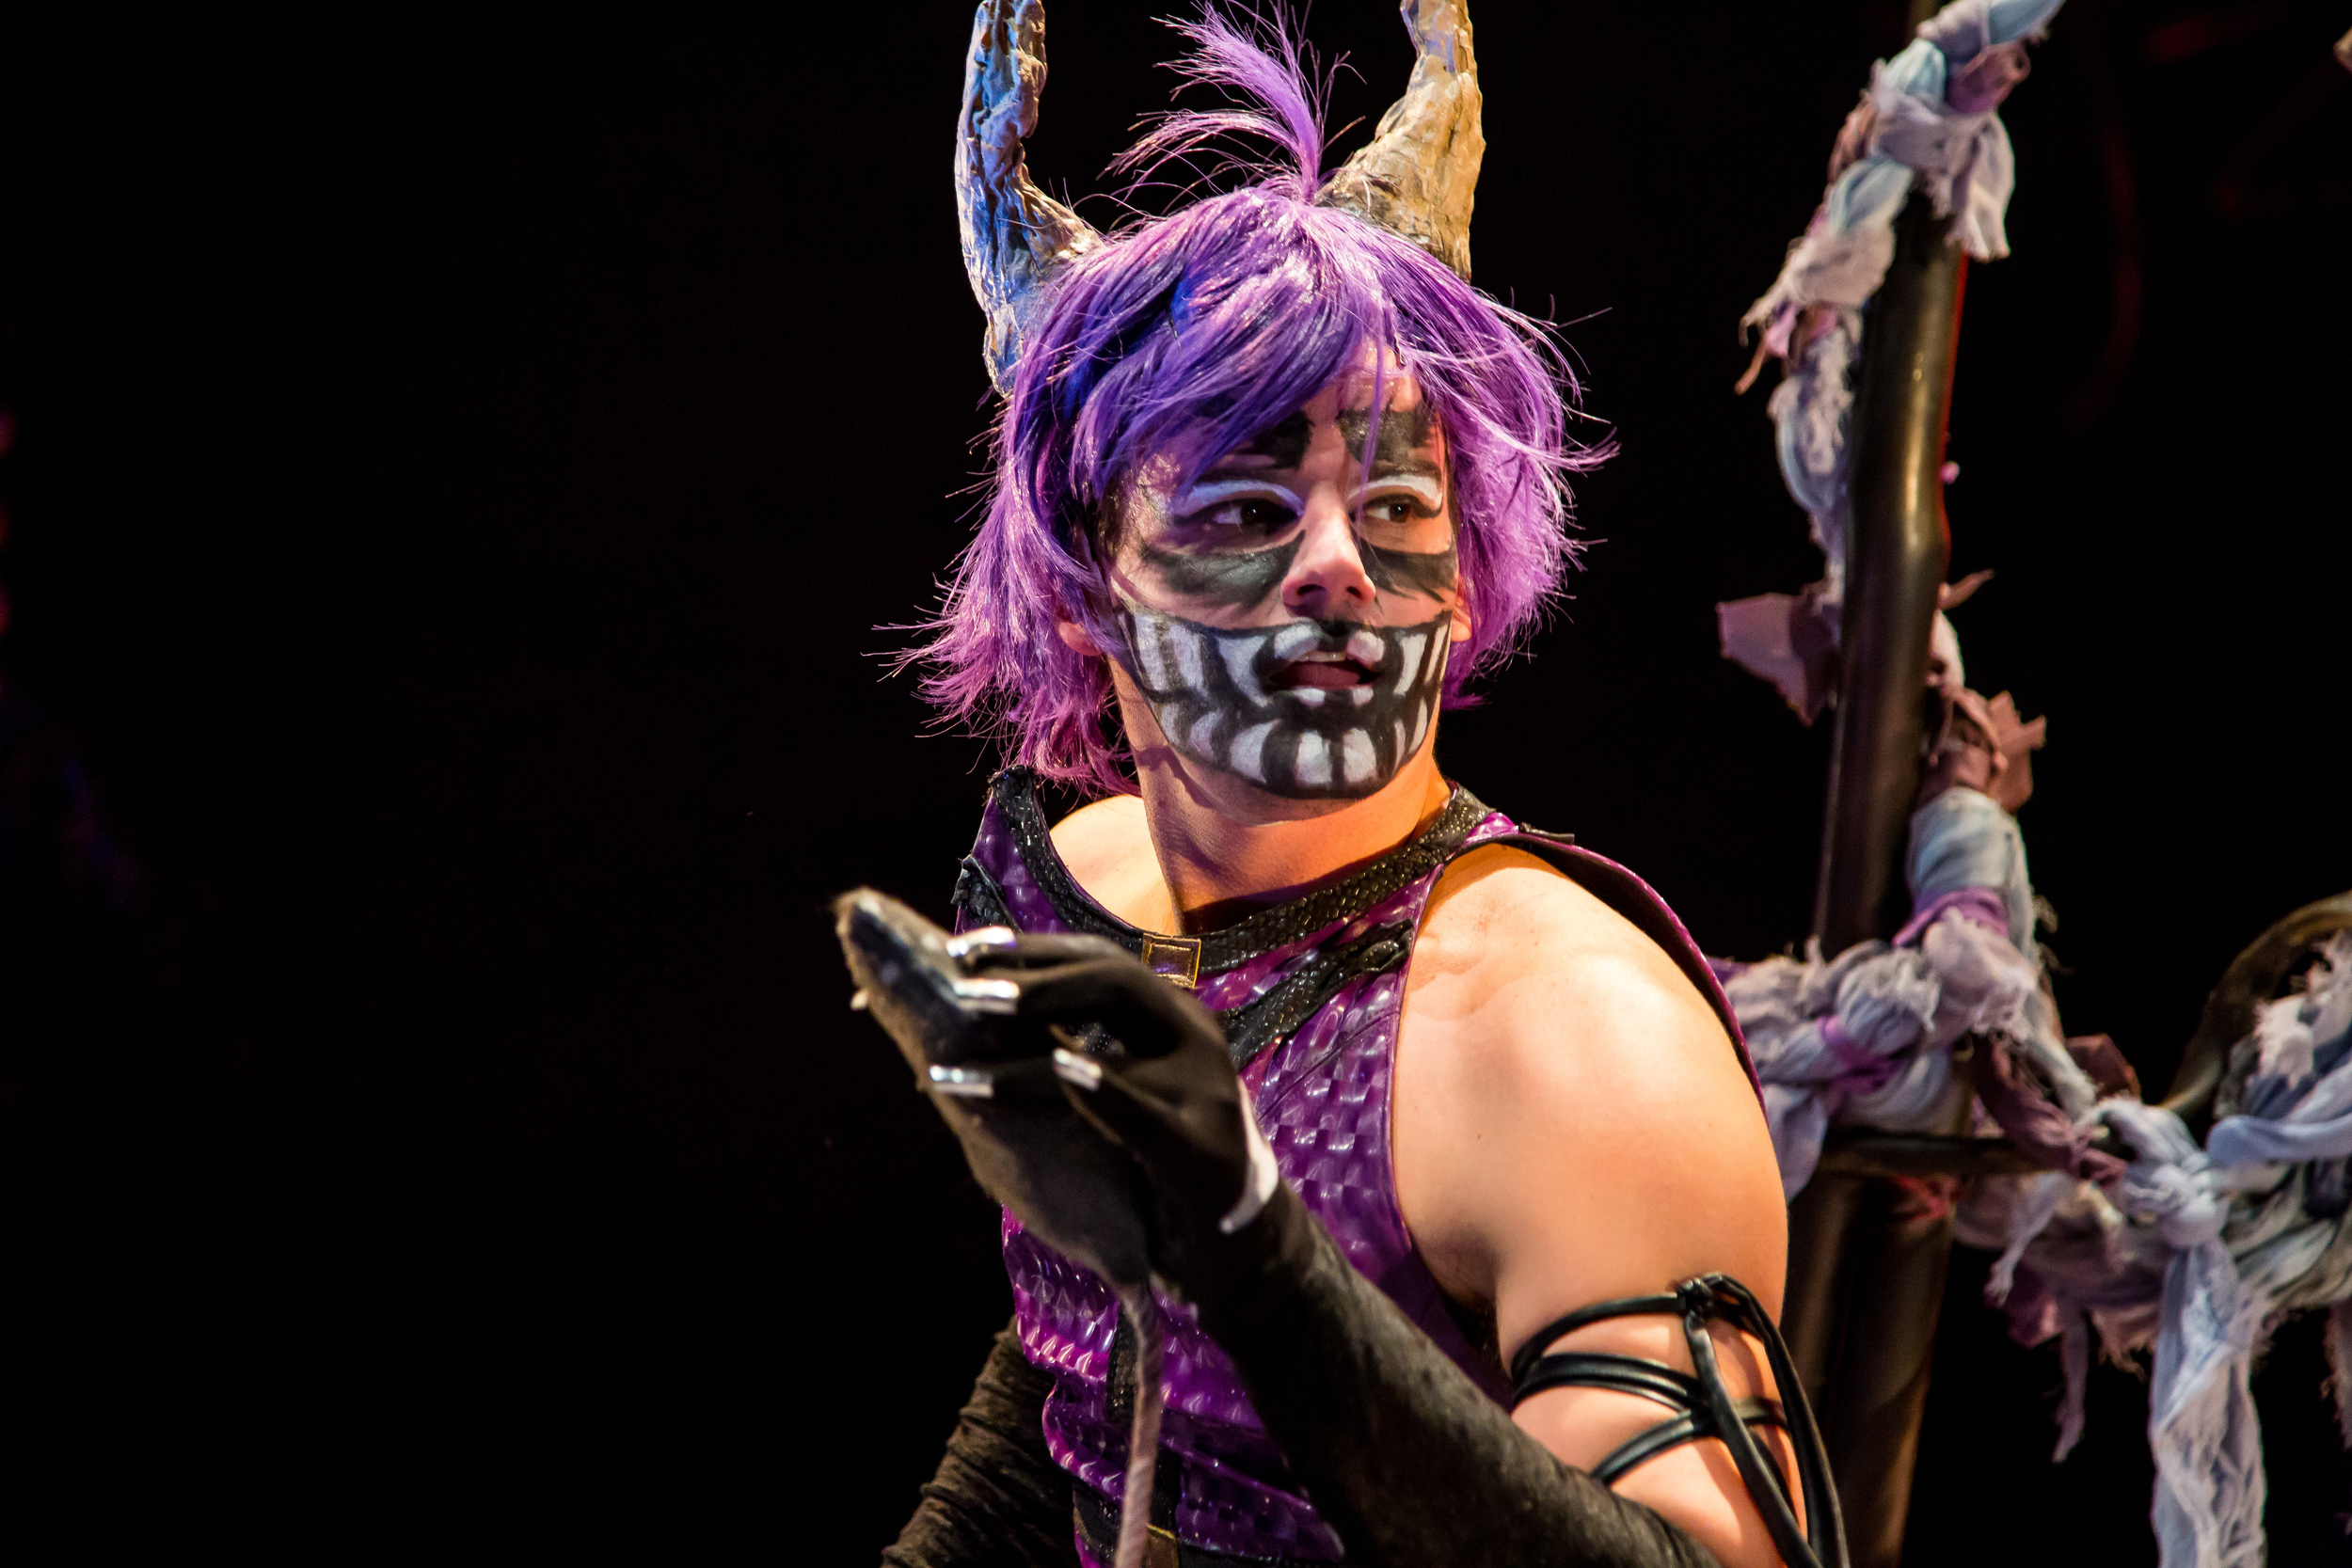 Alex Mills as the Cheshire Cat (Johnny Shryock)